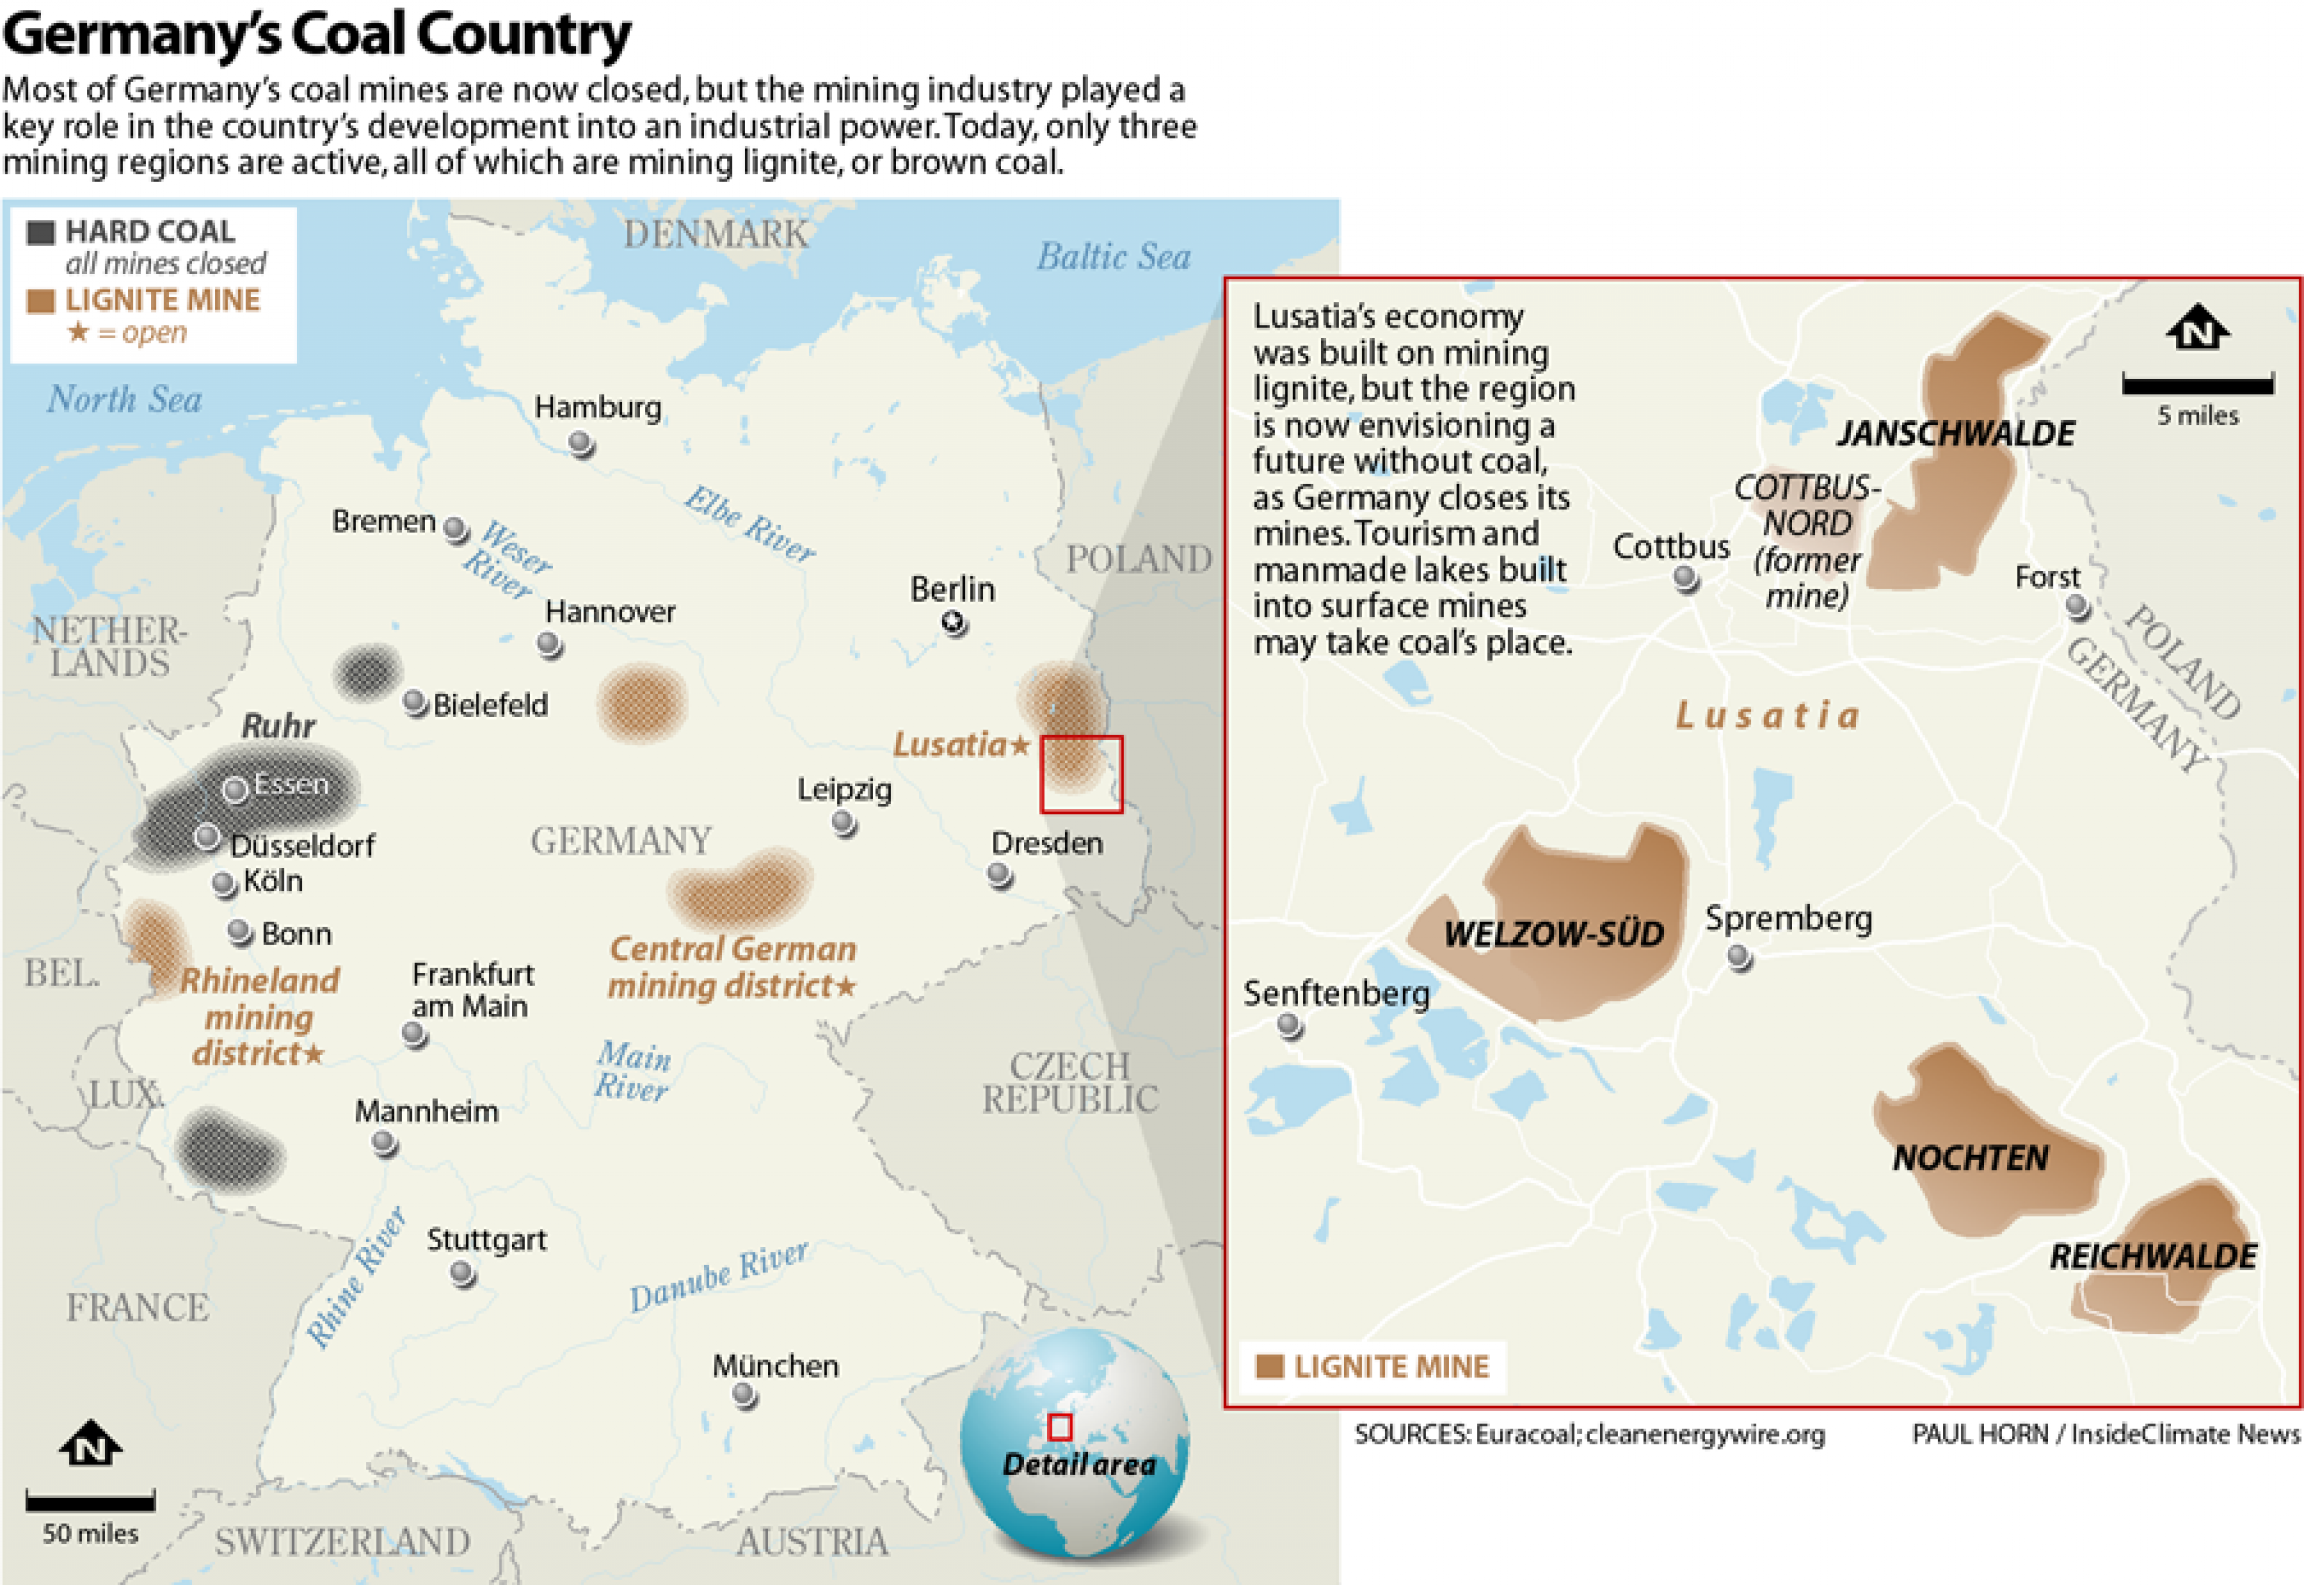 Germany's coal country